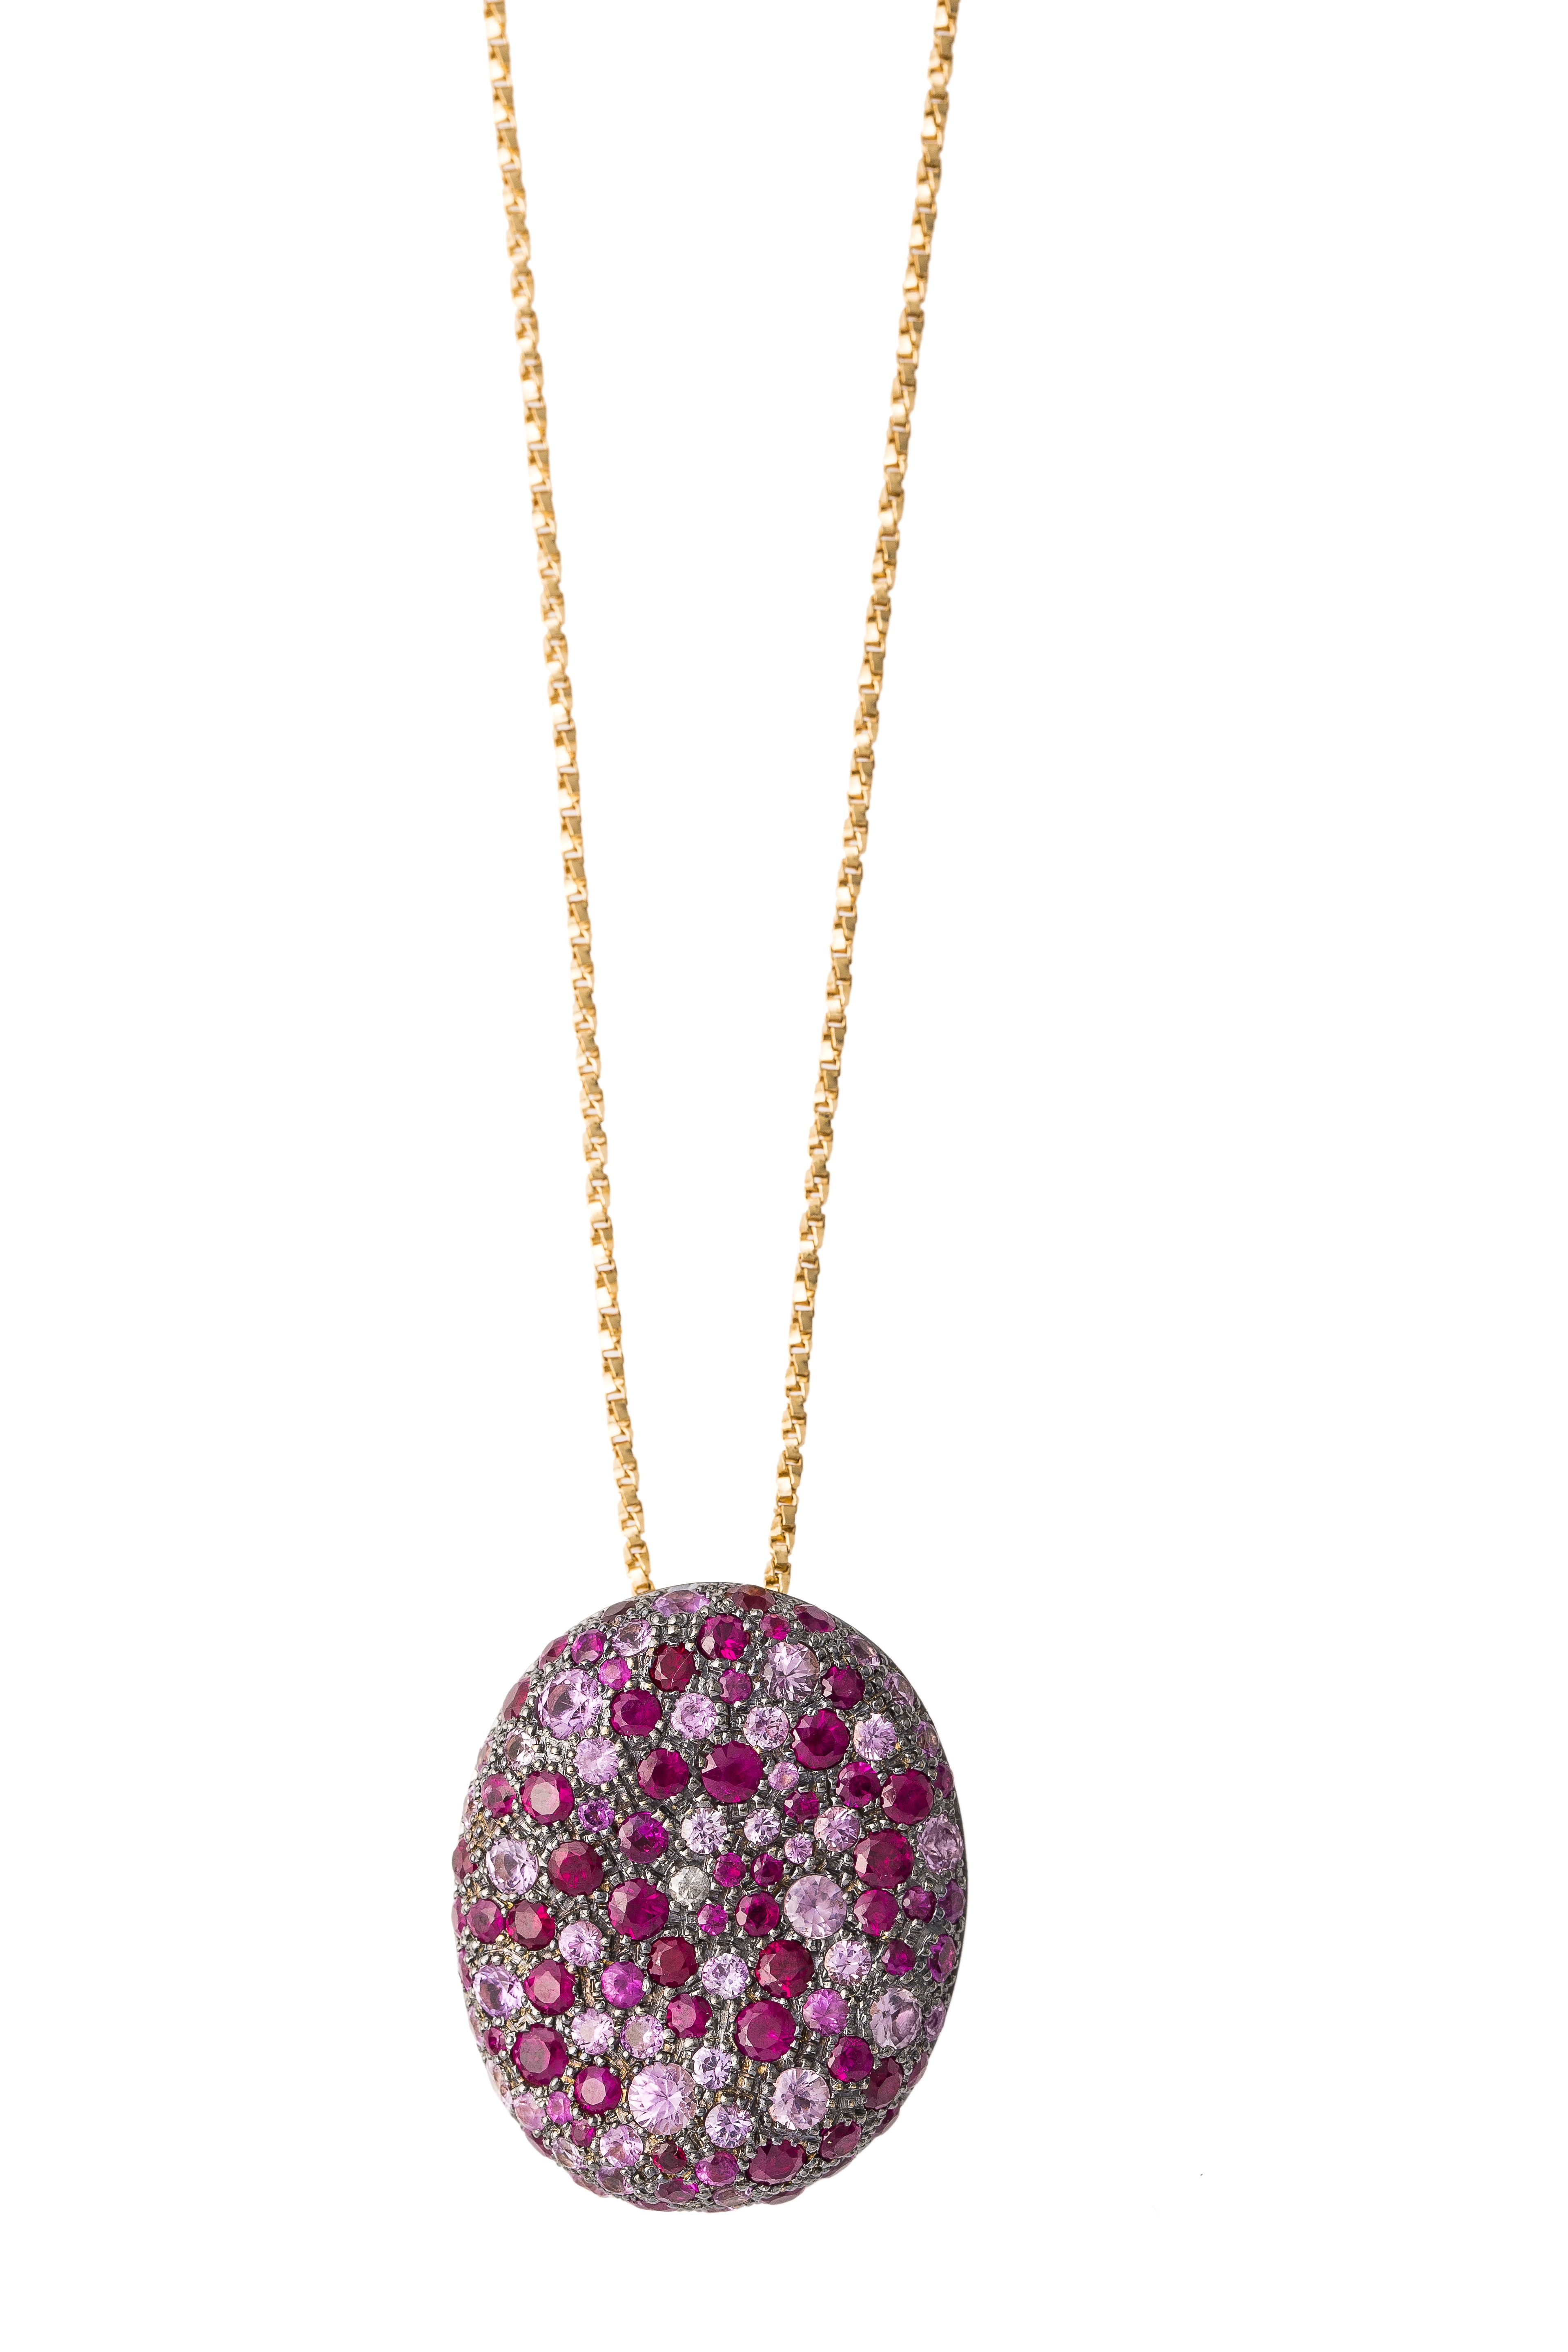 Nada G Malak necklace with k Gold and ct multicolor Saphire